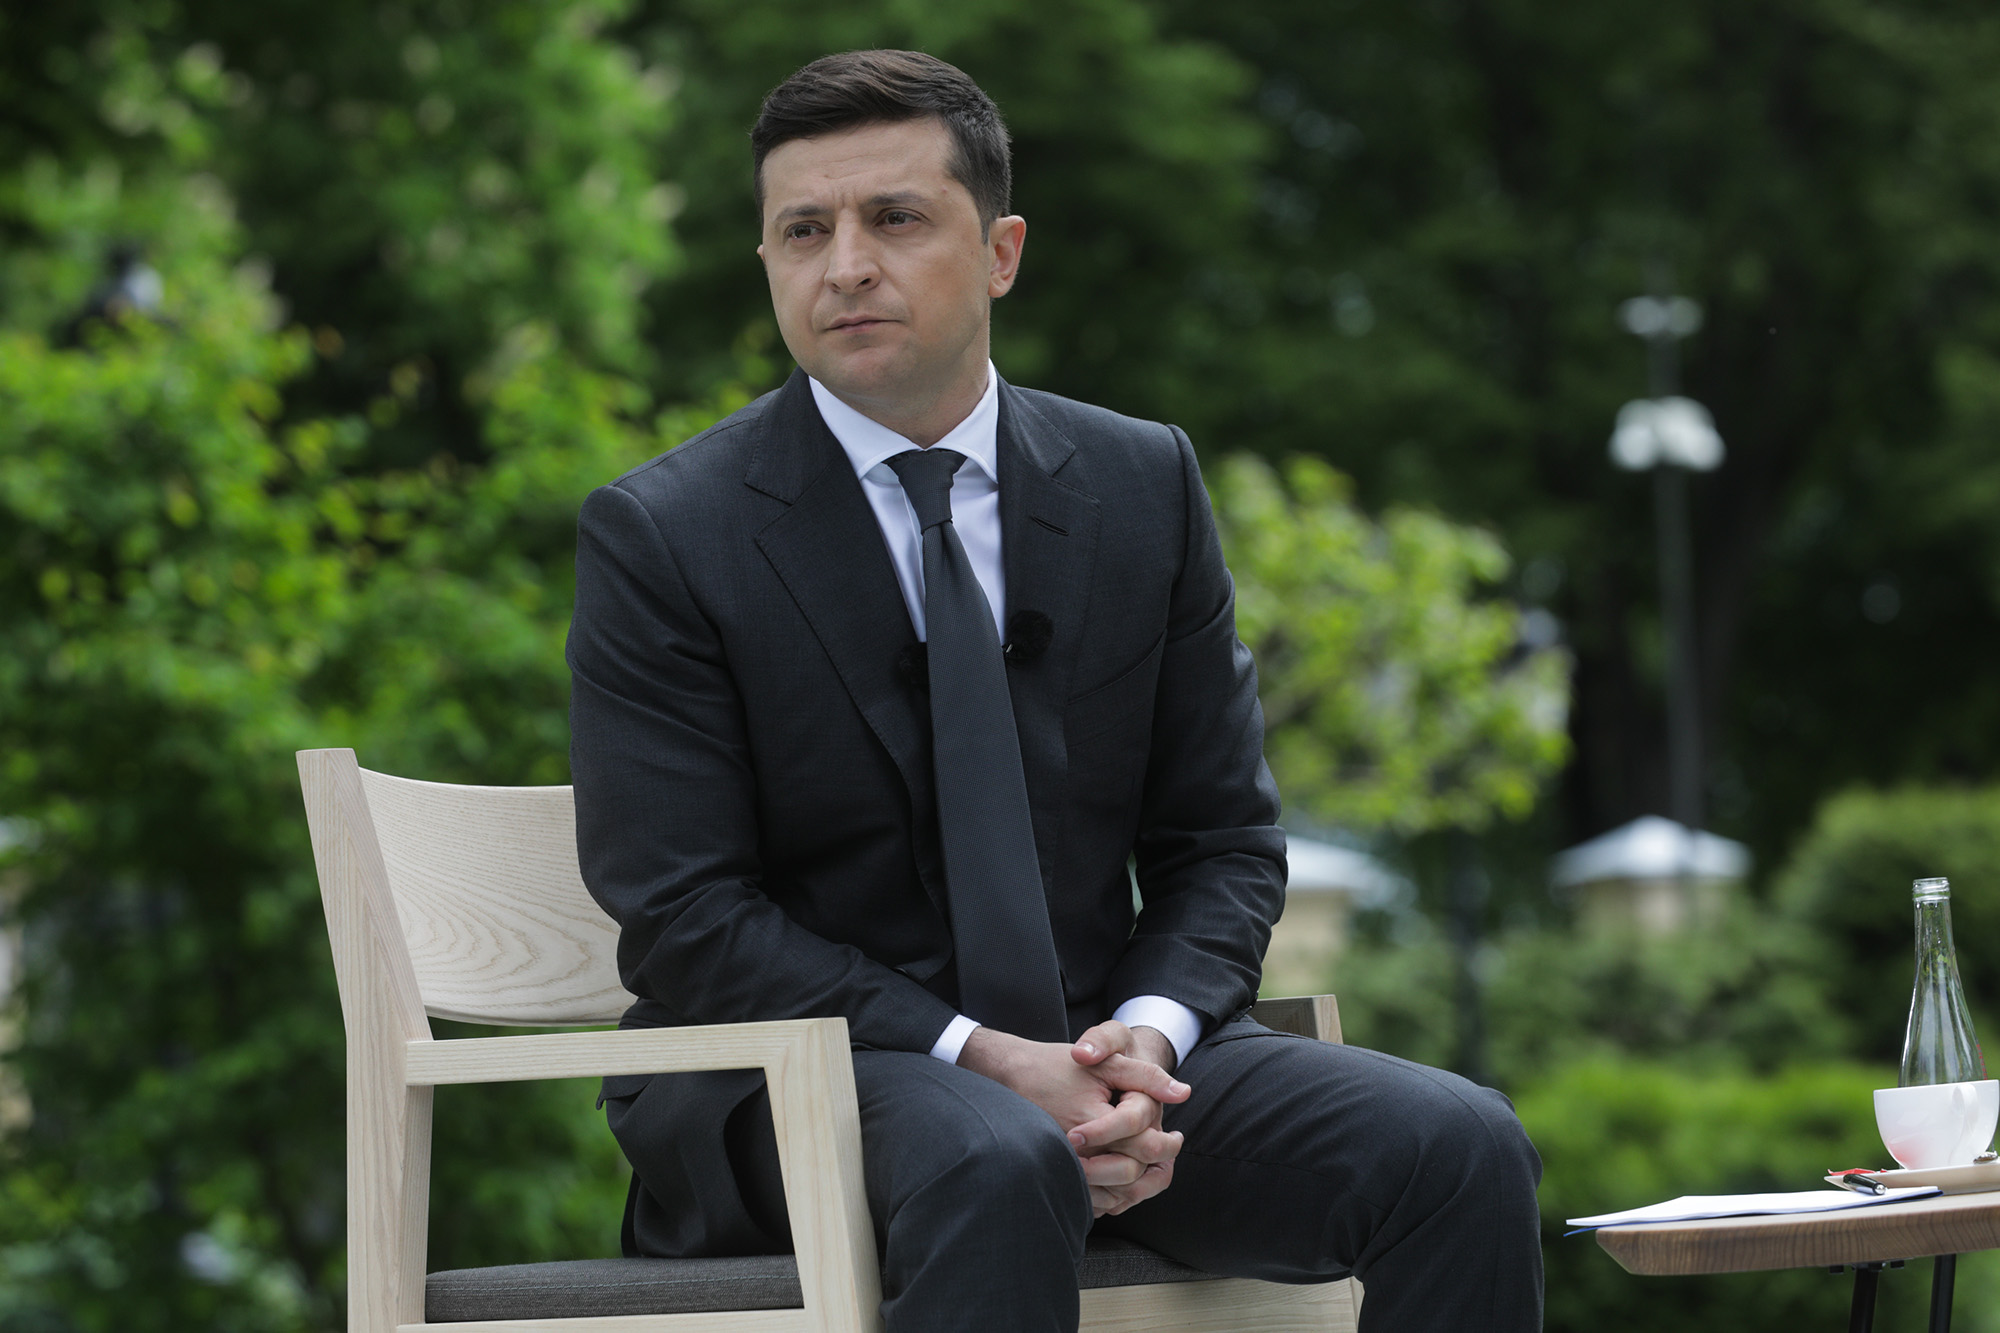 President of Ukraine Volodymyr Zelensky speaks during a press conference in Kyiv, Ukraine, on Wednesday, May 20.